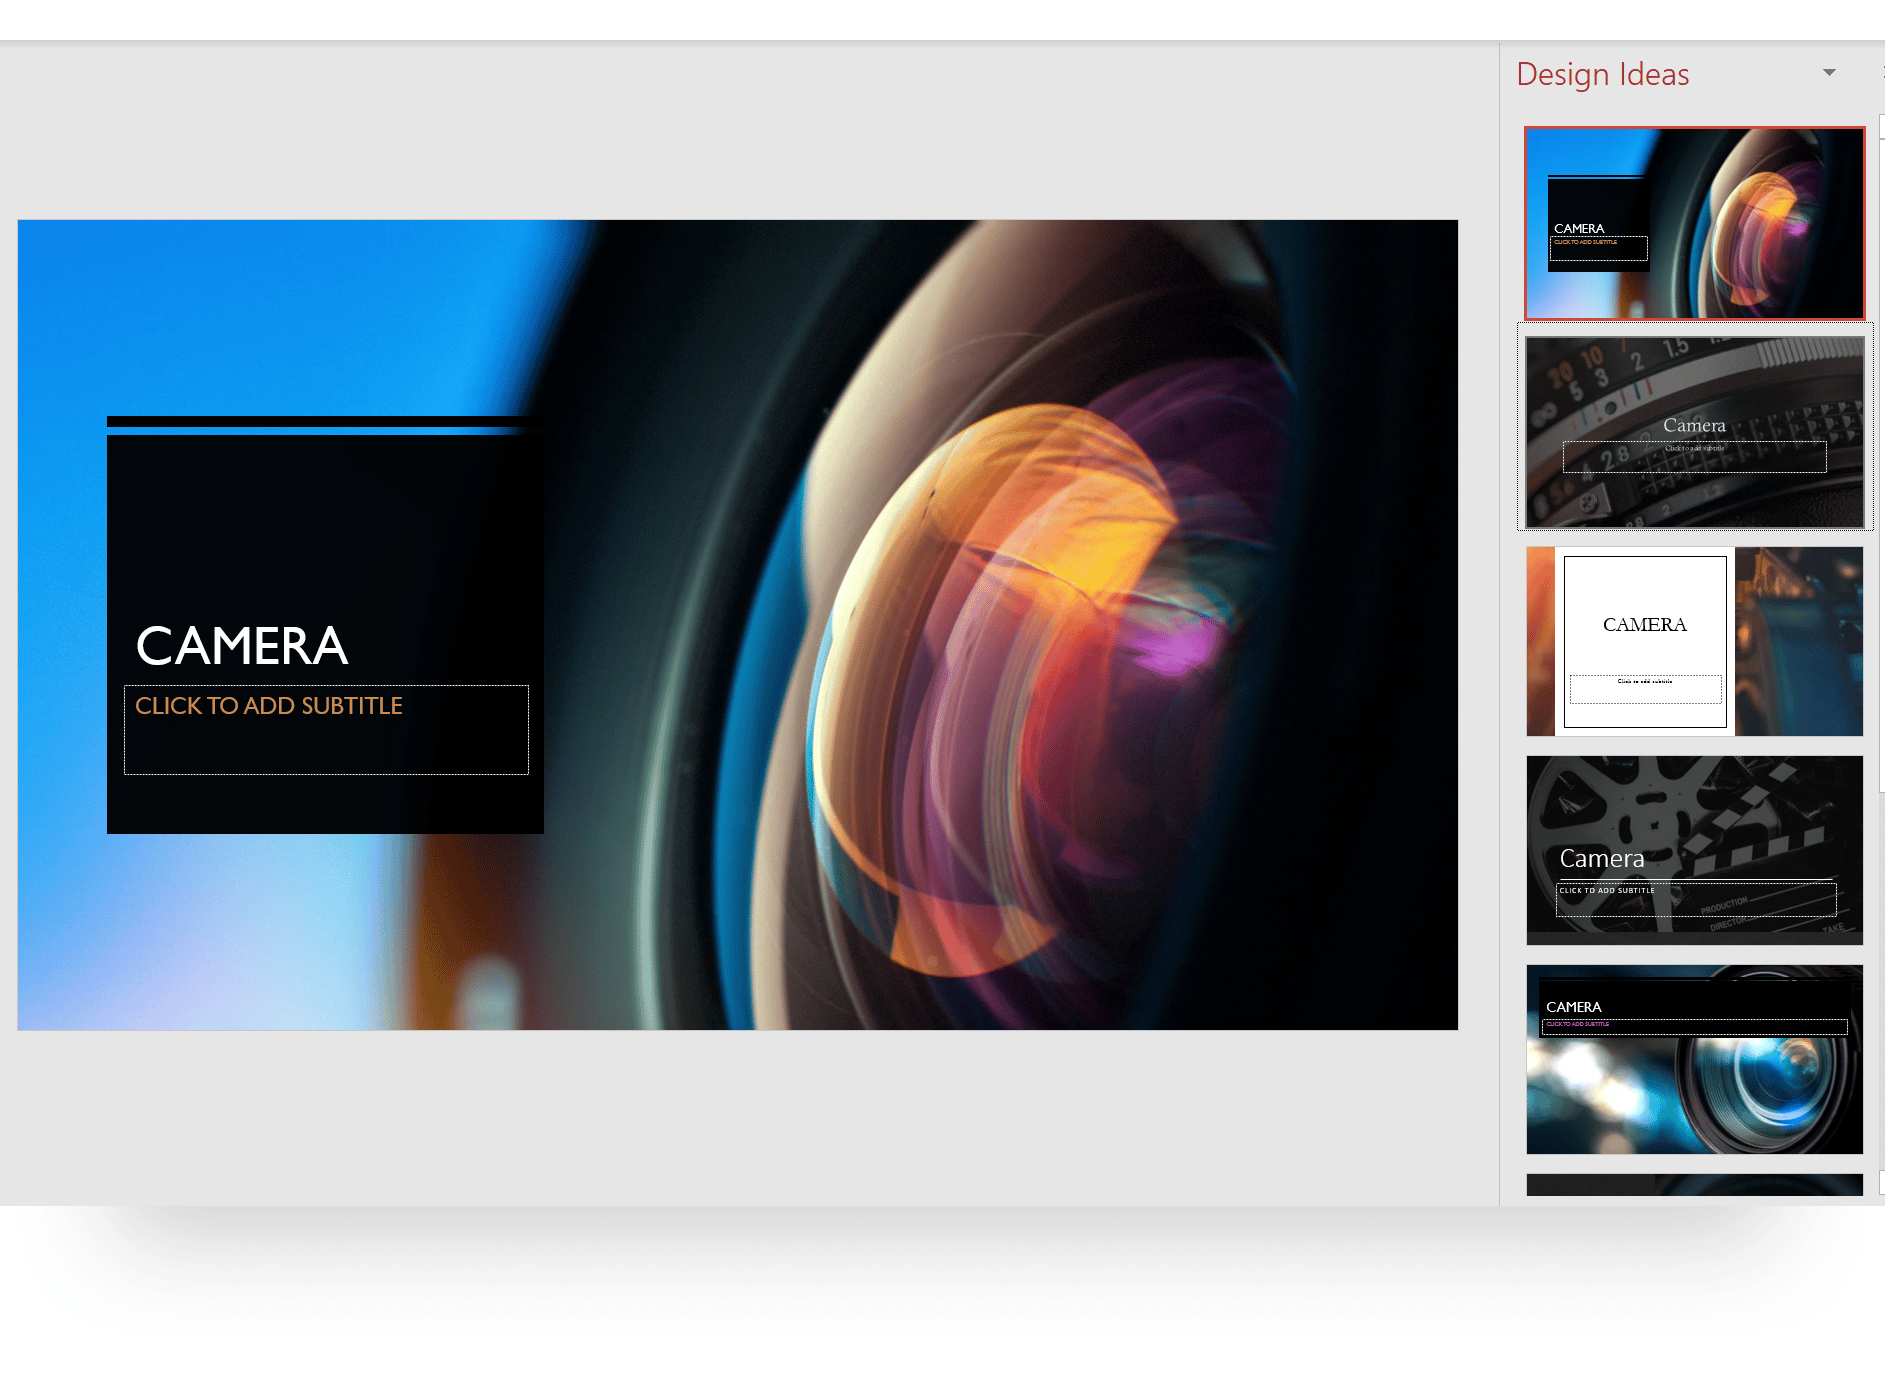 PowerPoint AI Designer Image Suggestions